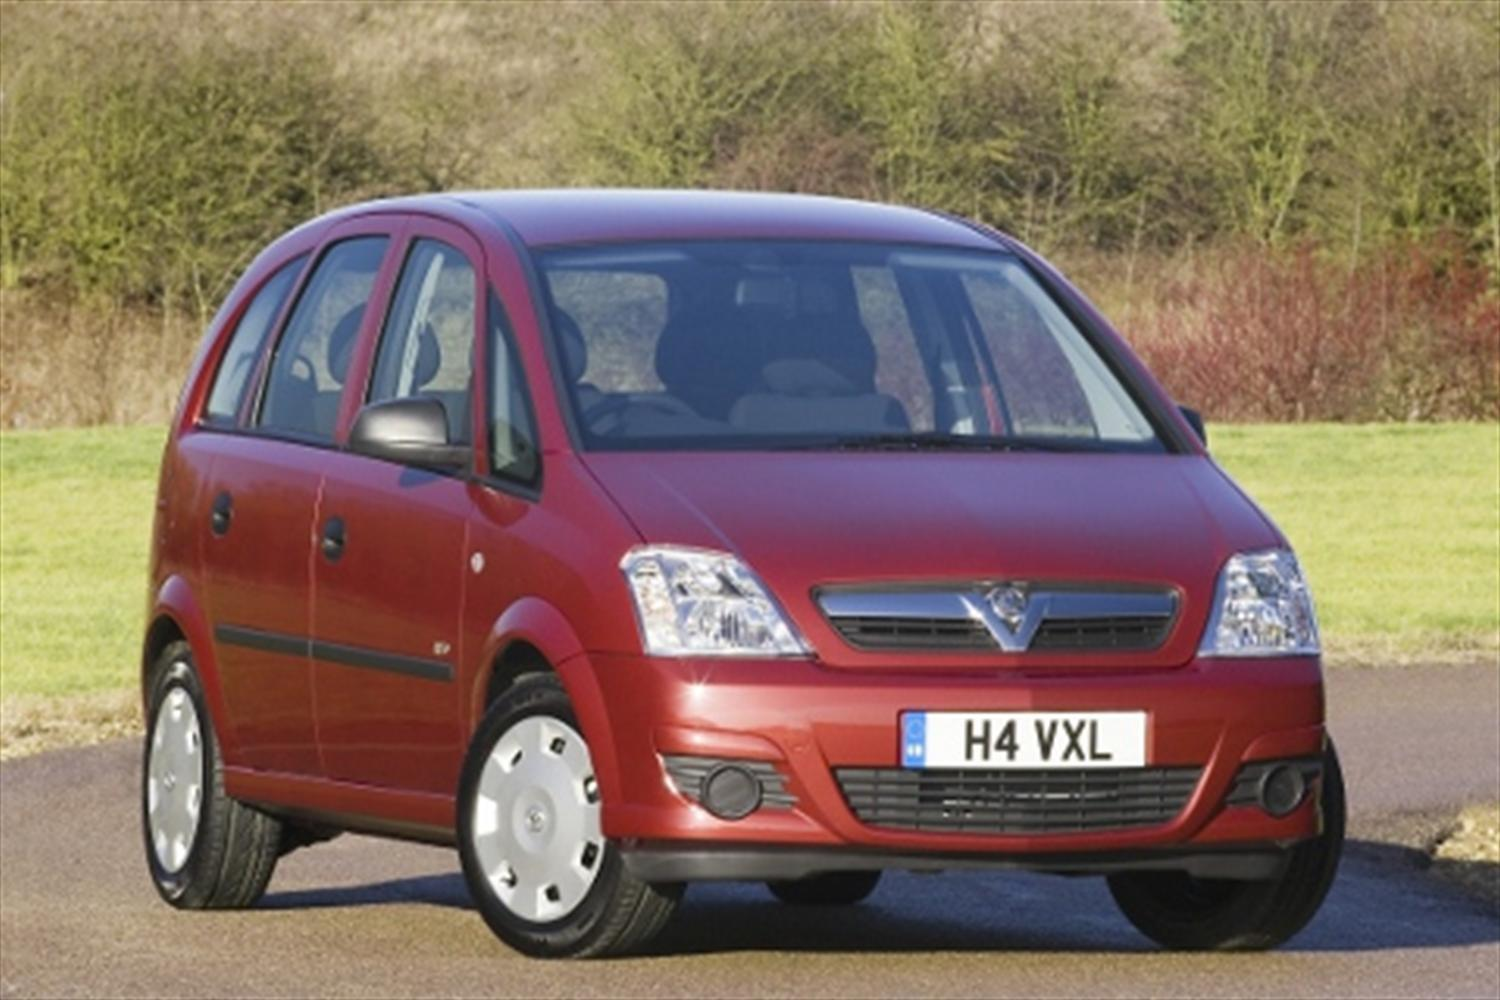 The picks of the Vauxhall 0% APR offer